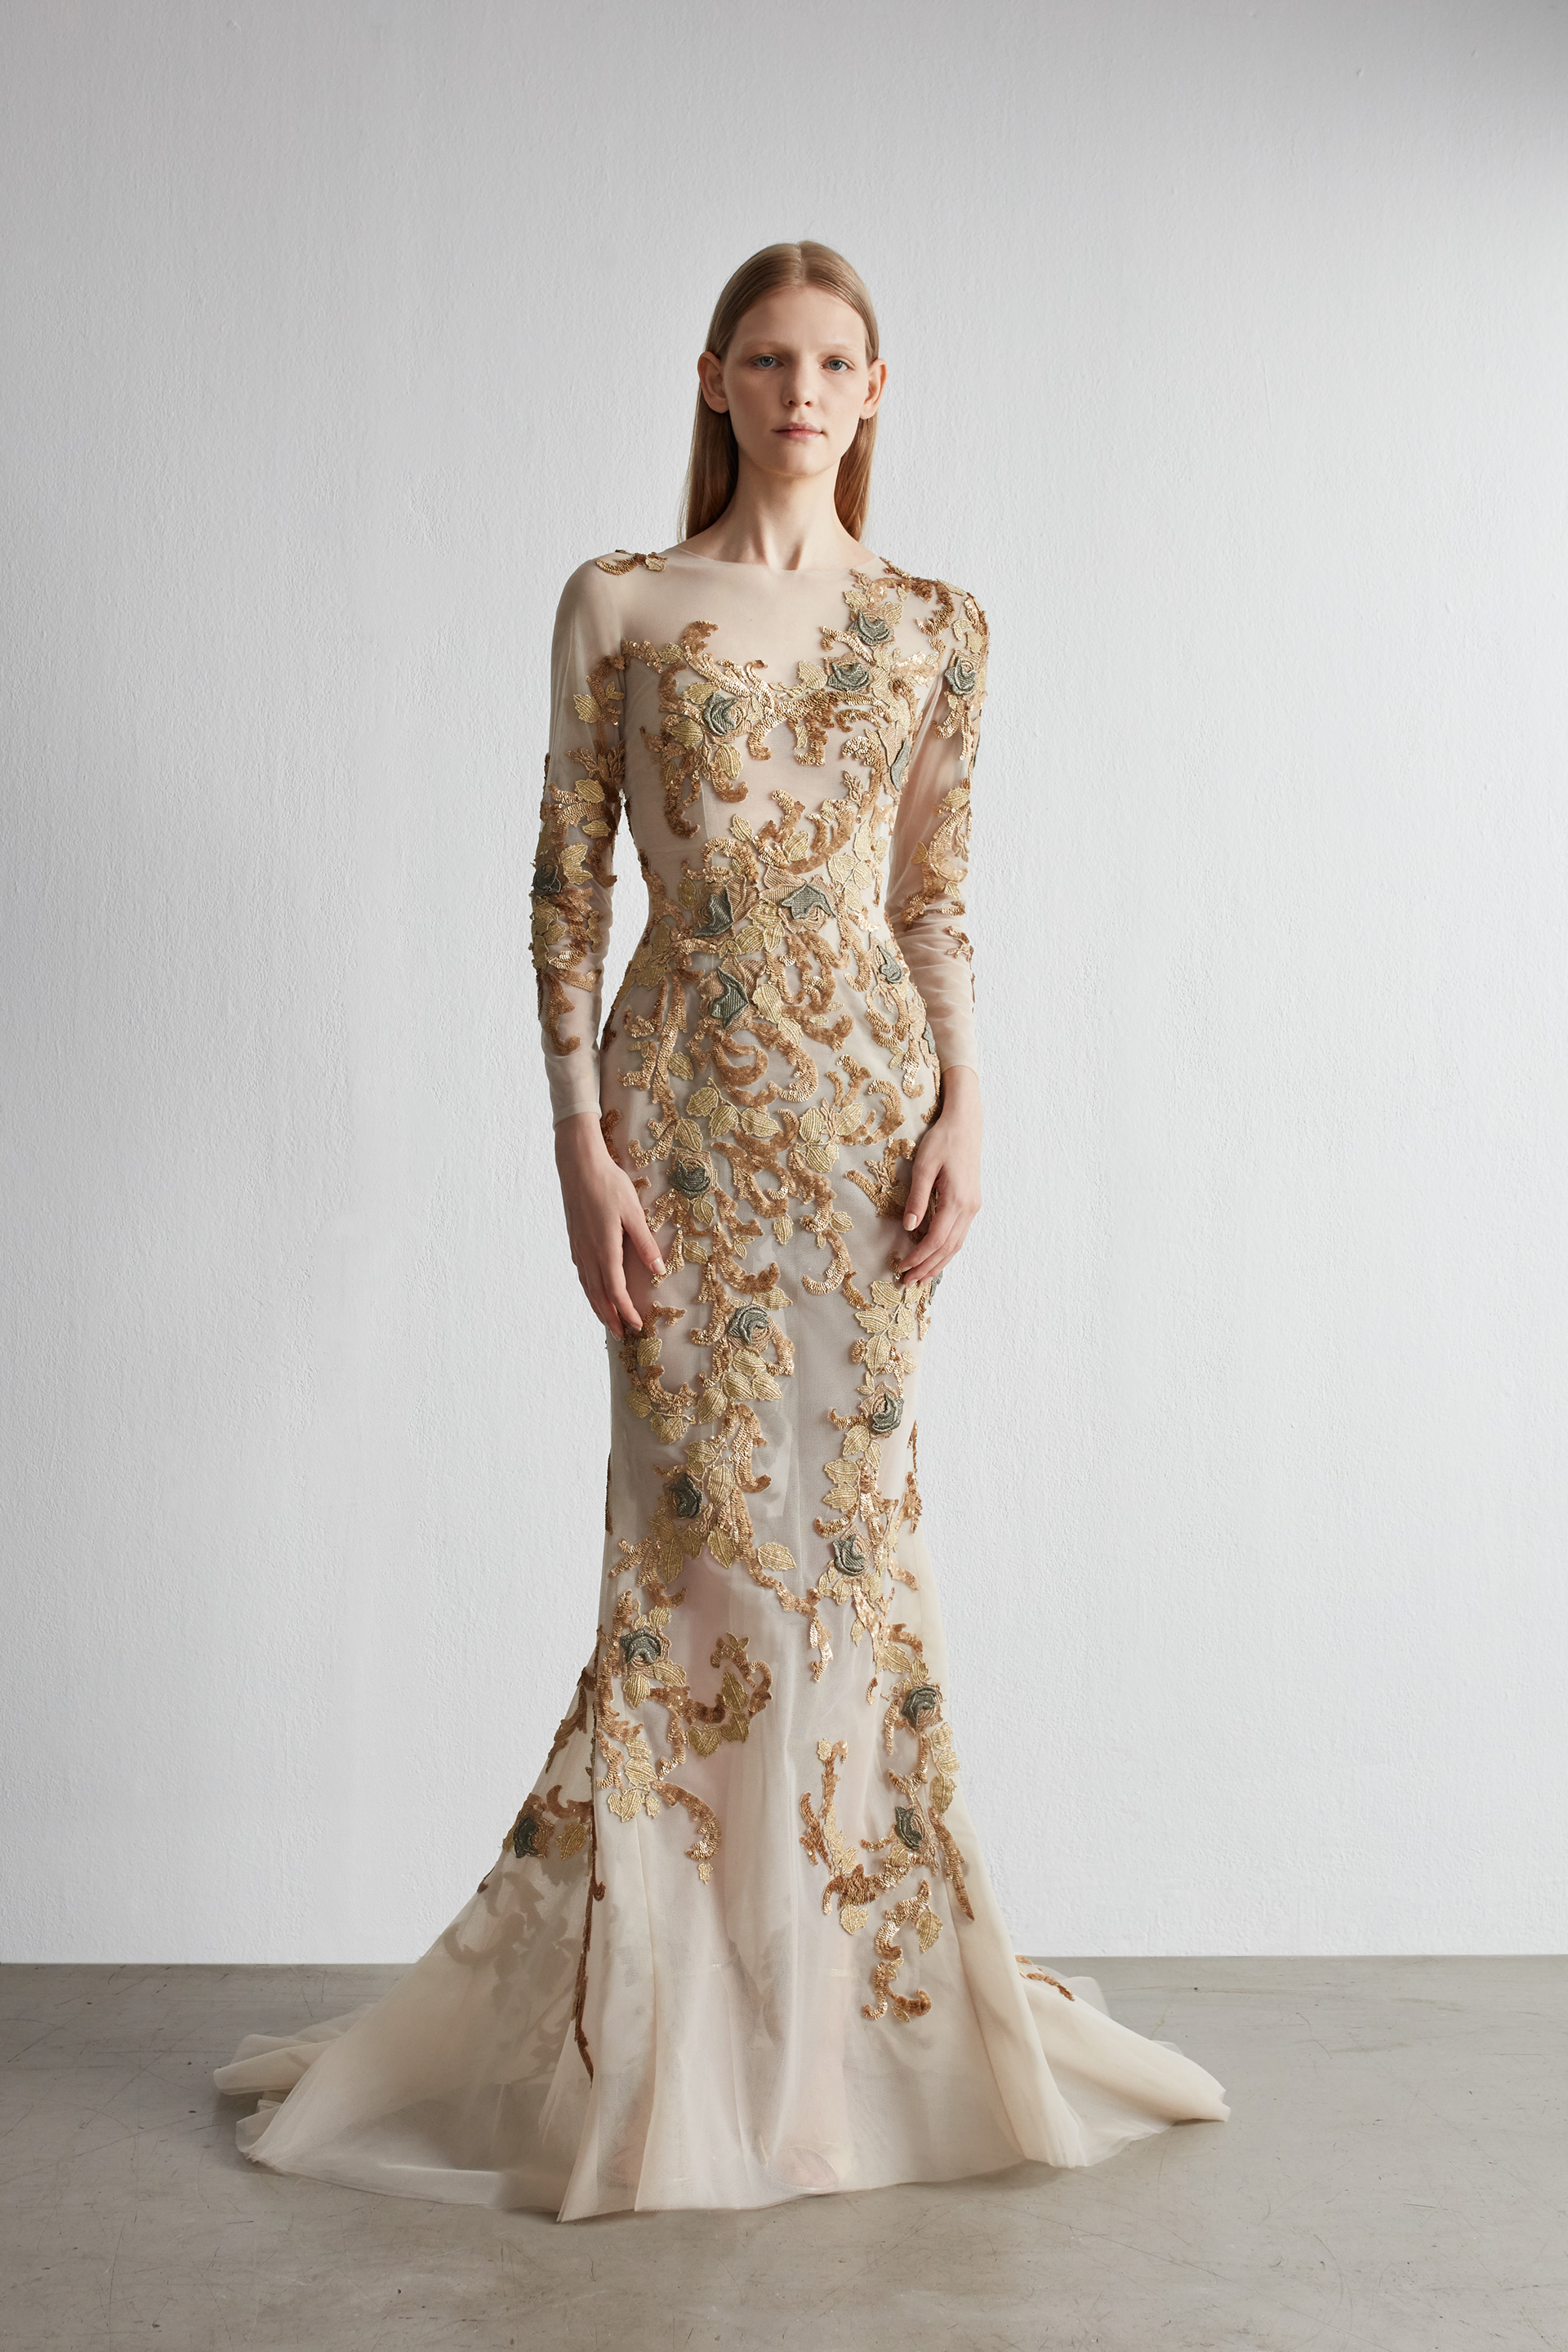 Mermaid embroidered evening dress